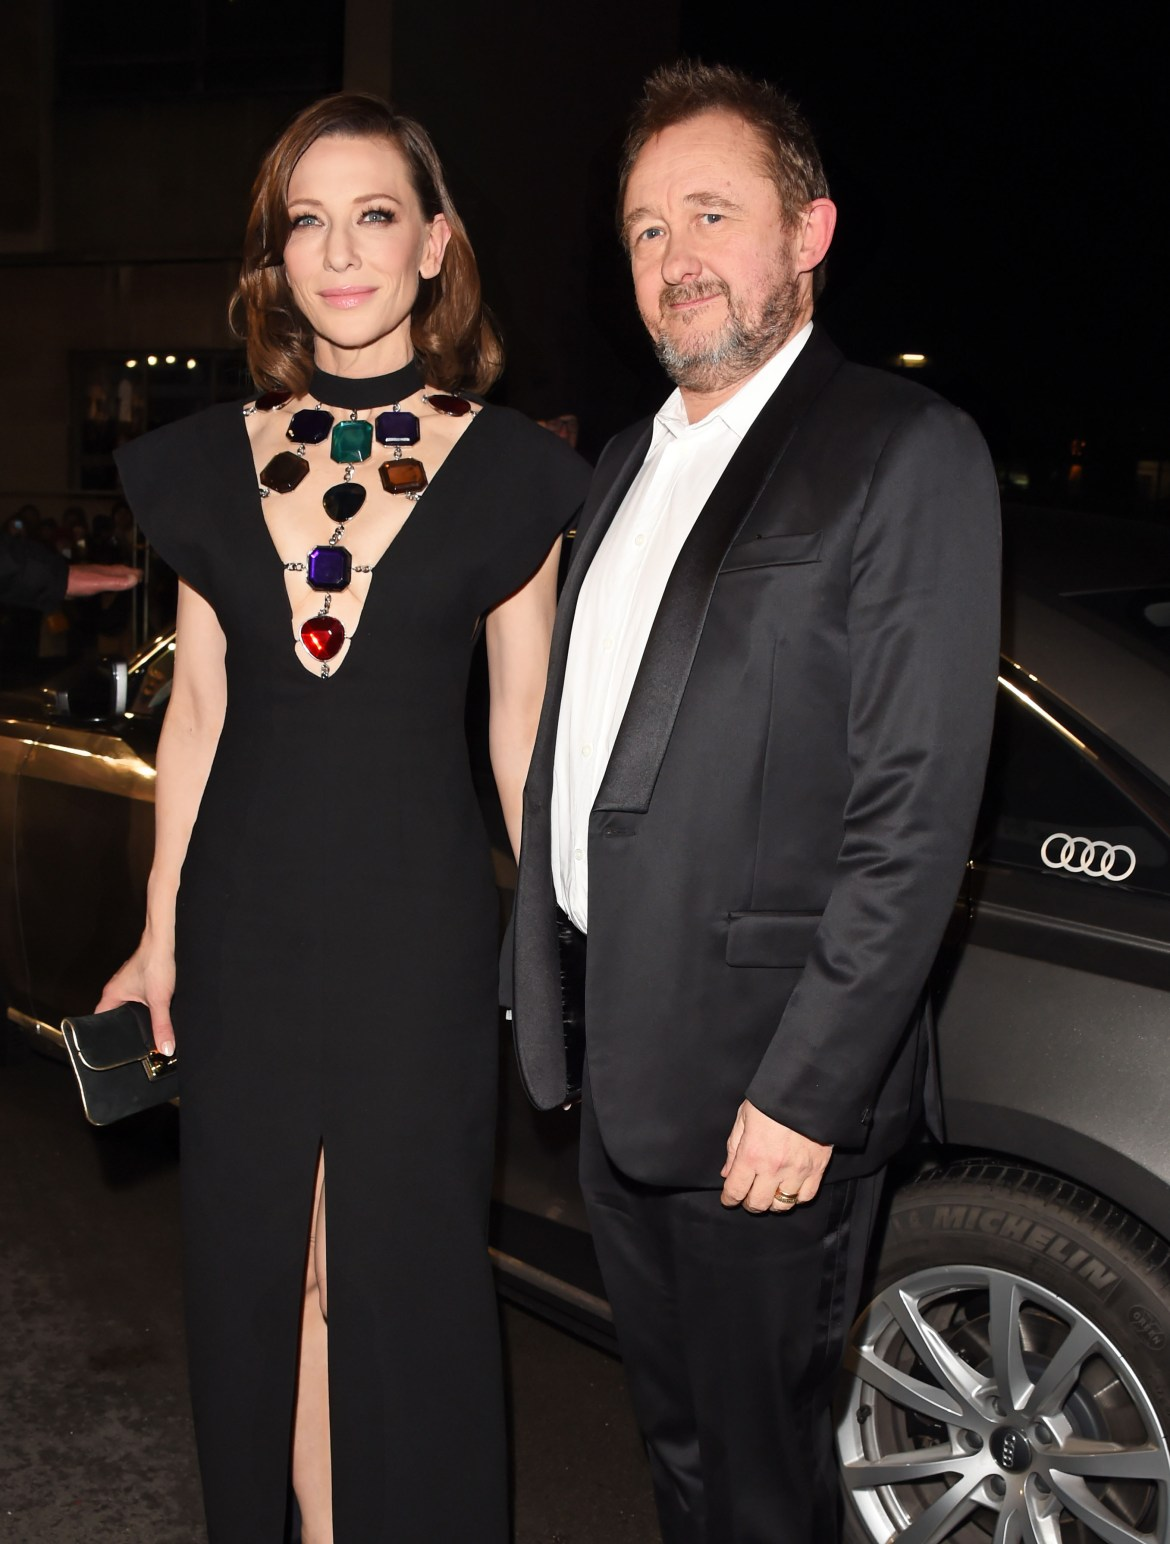 Cate blanchett & andrew upton arrive in an audi at the ee british academy film awards at the royal albert hall, london, sunday 10 february 2019